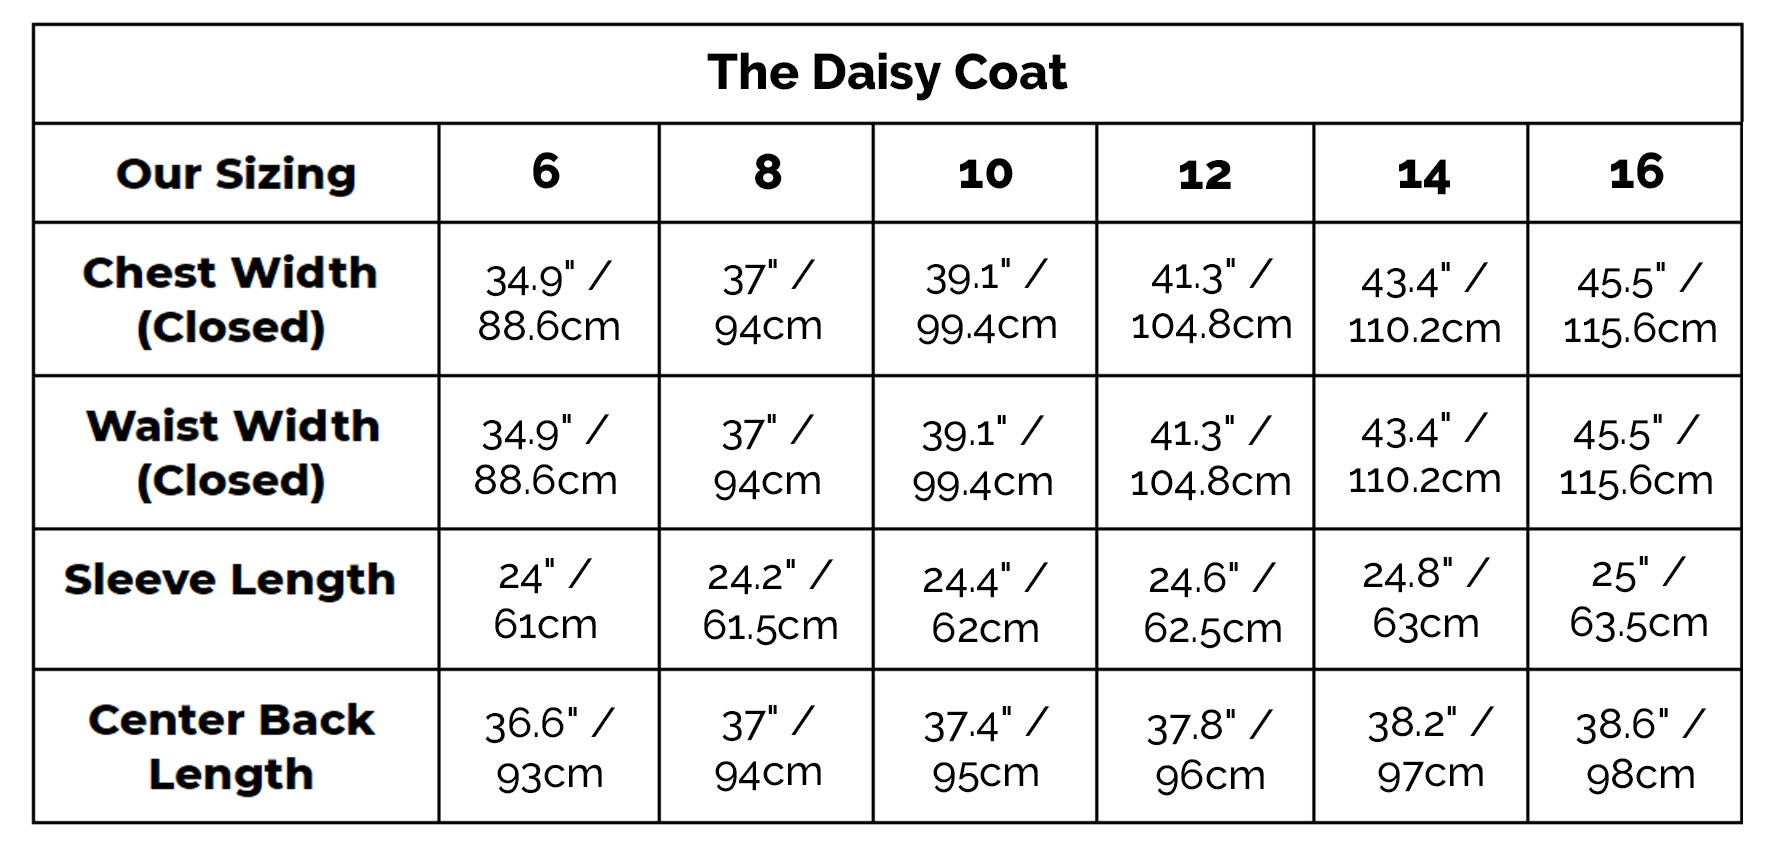 The Daisy Coat Size Guide